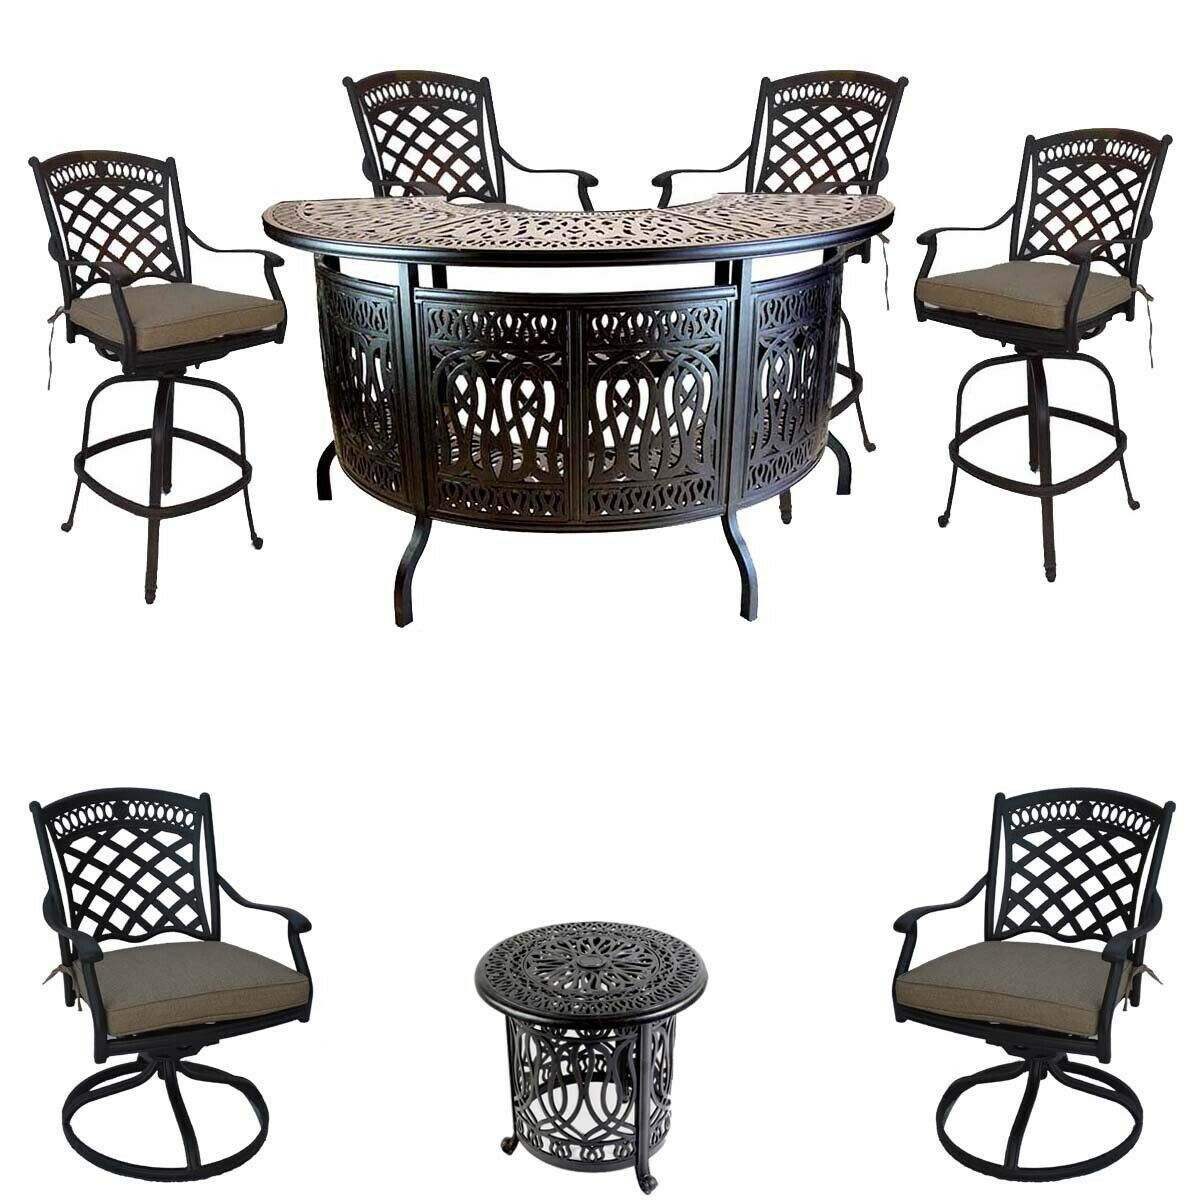 8 piece patio cast aluminum party bar and swivel bistro set with Sunbrella seats